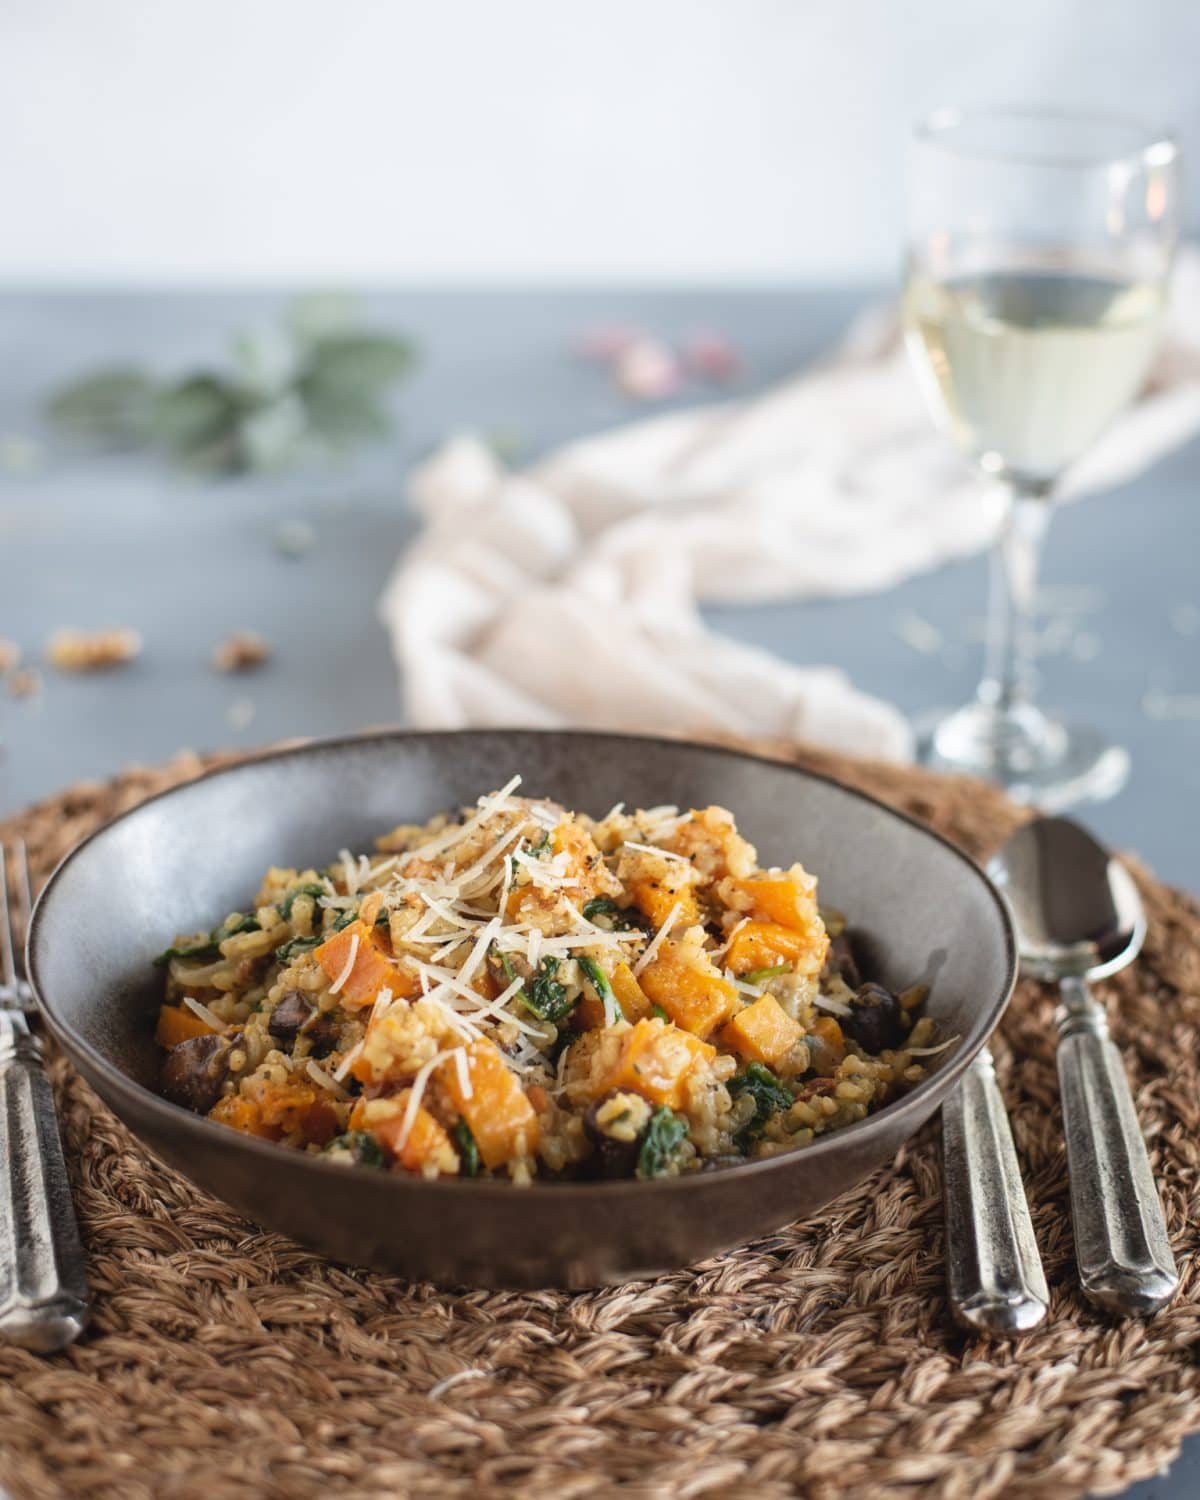 Bowl of Brown Rice Risotto with Butternut Squash & Mushrooms